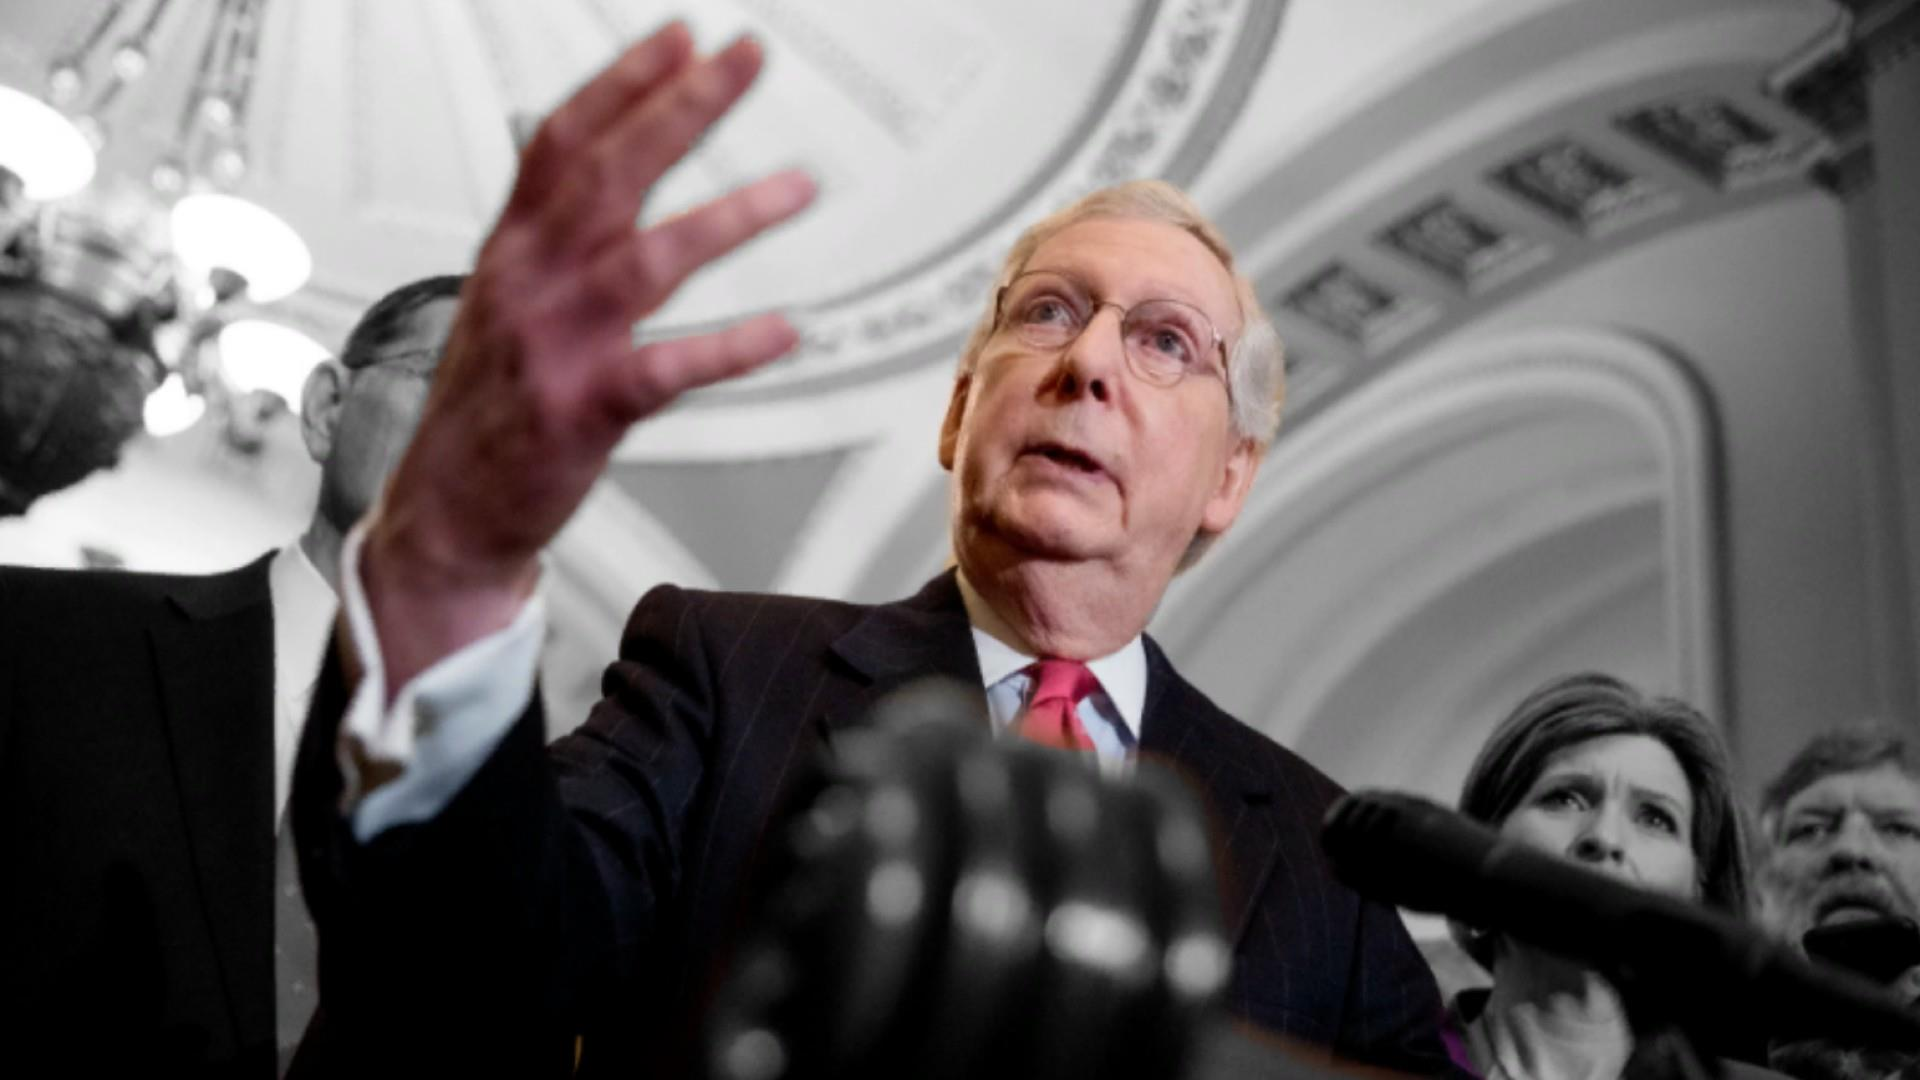 McConnell bristles at 'Moscow Mitch' after blocking election security bill